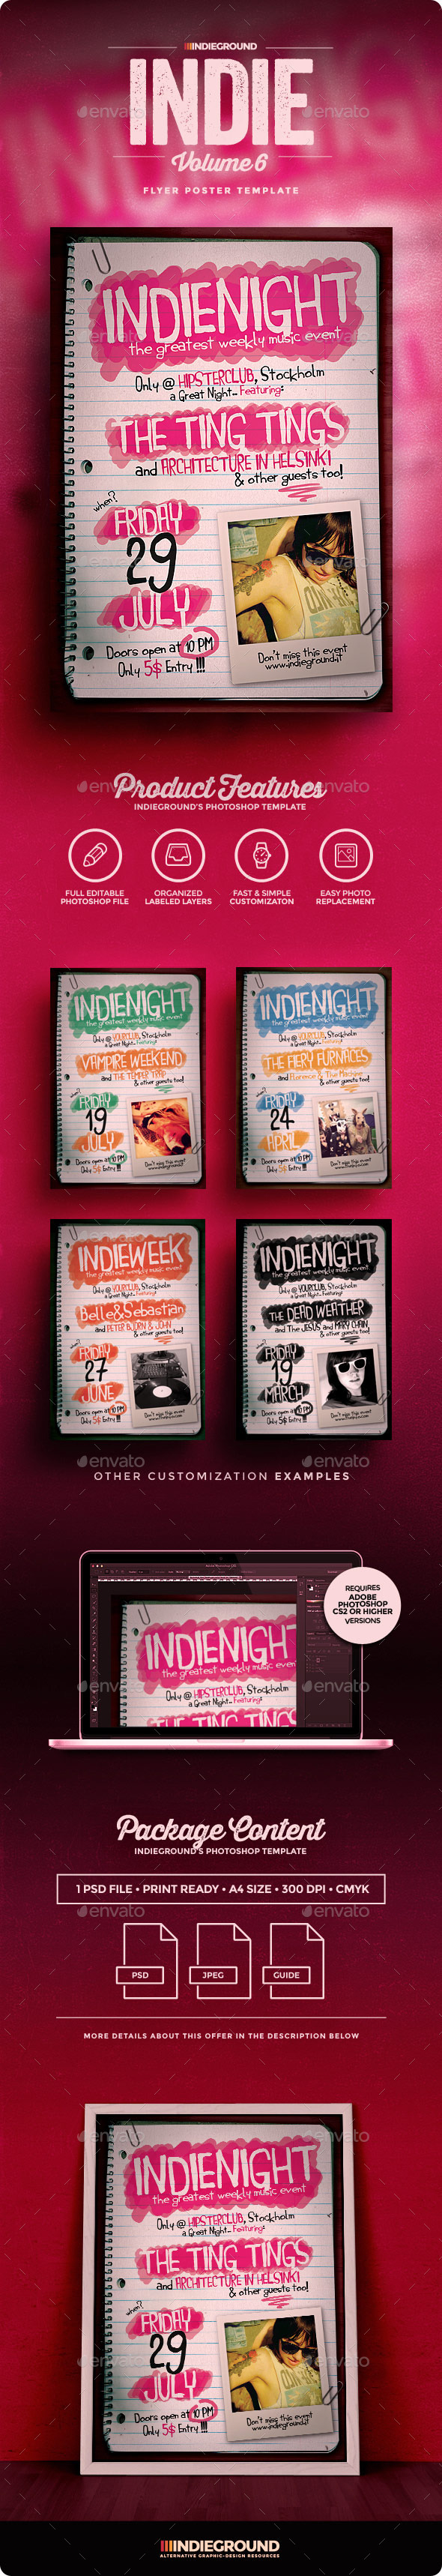 Indie Flyer/Poster Vol. 6 - Clubs & Parties Events